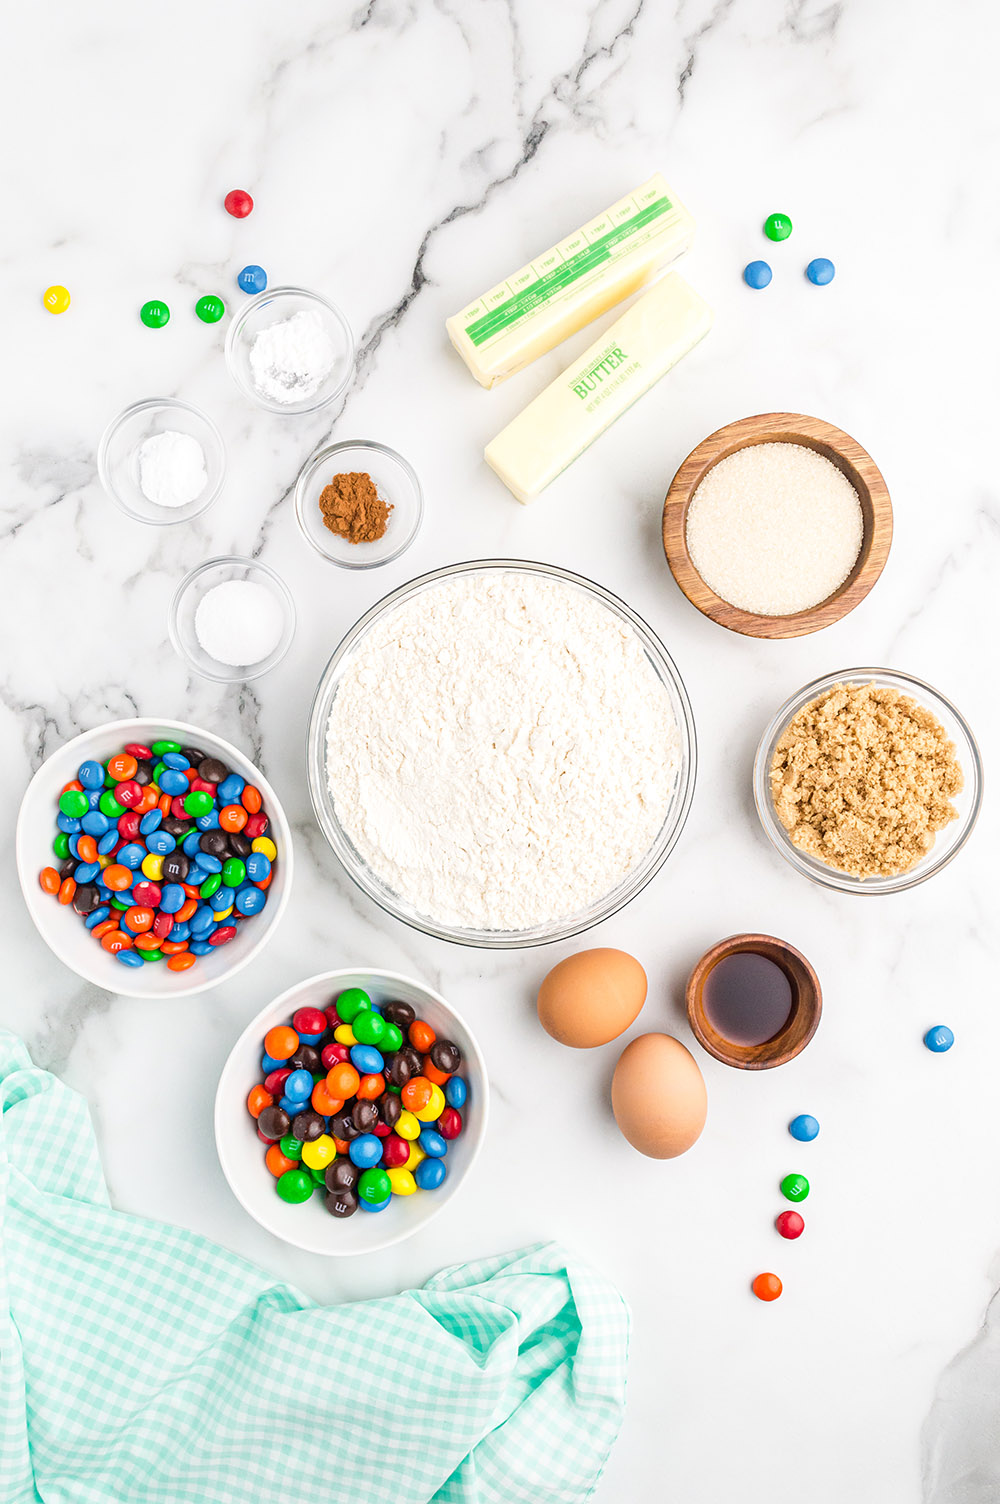 Butter, flour, M&M candies, eggs, and other ingredients to make cookies.